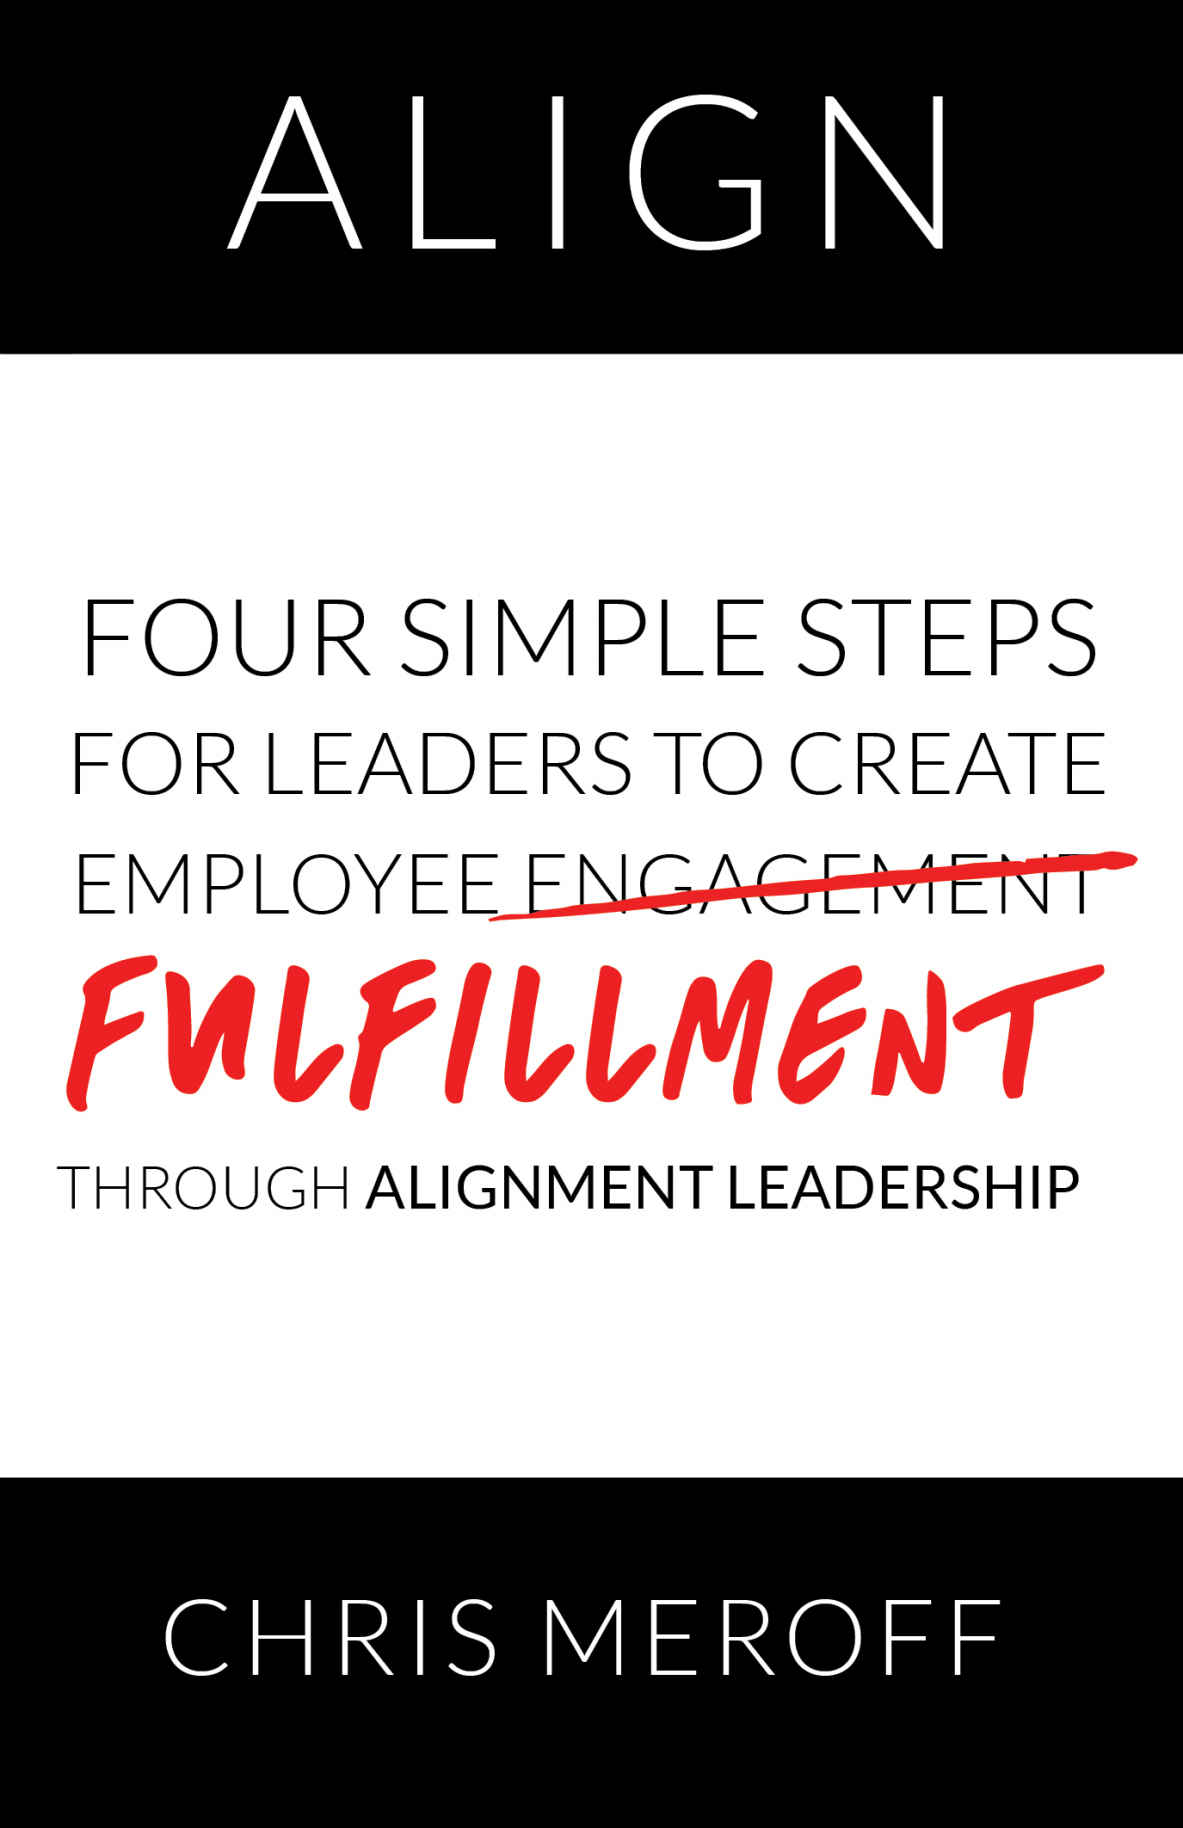 Four Simple Steps for Leaders to Creat Employer Fulfillment